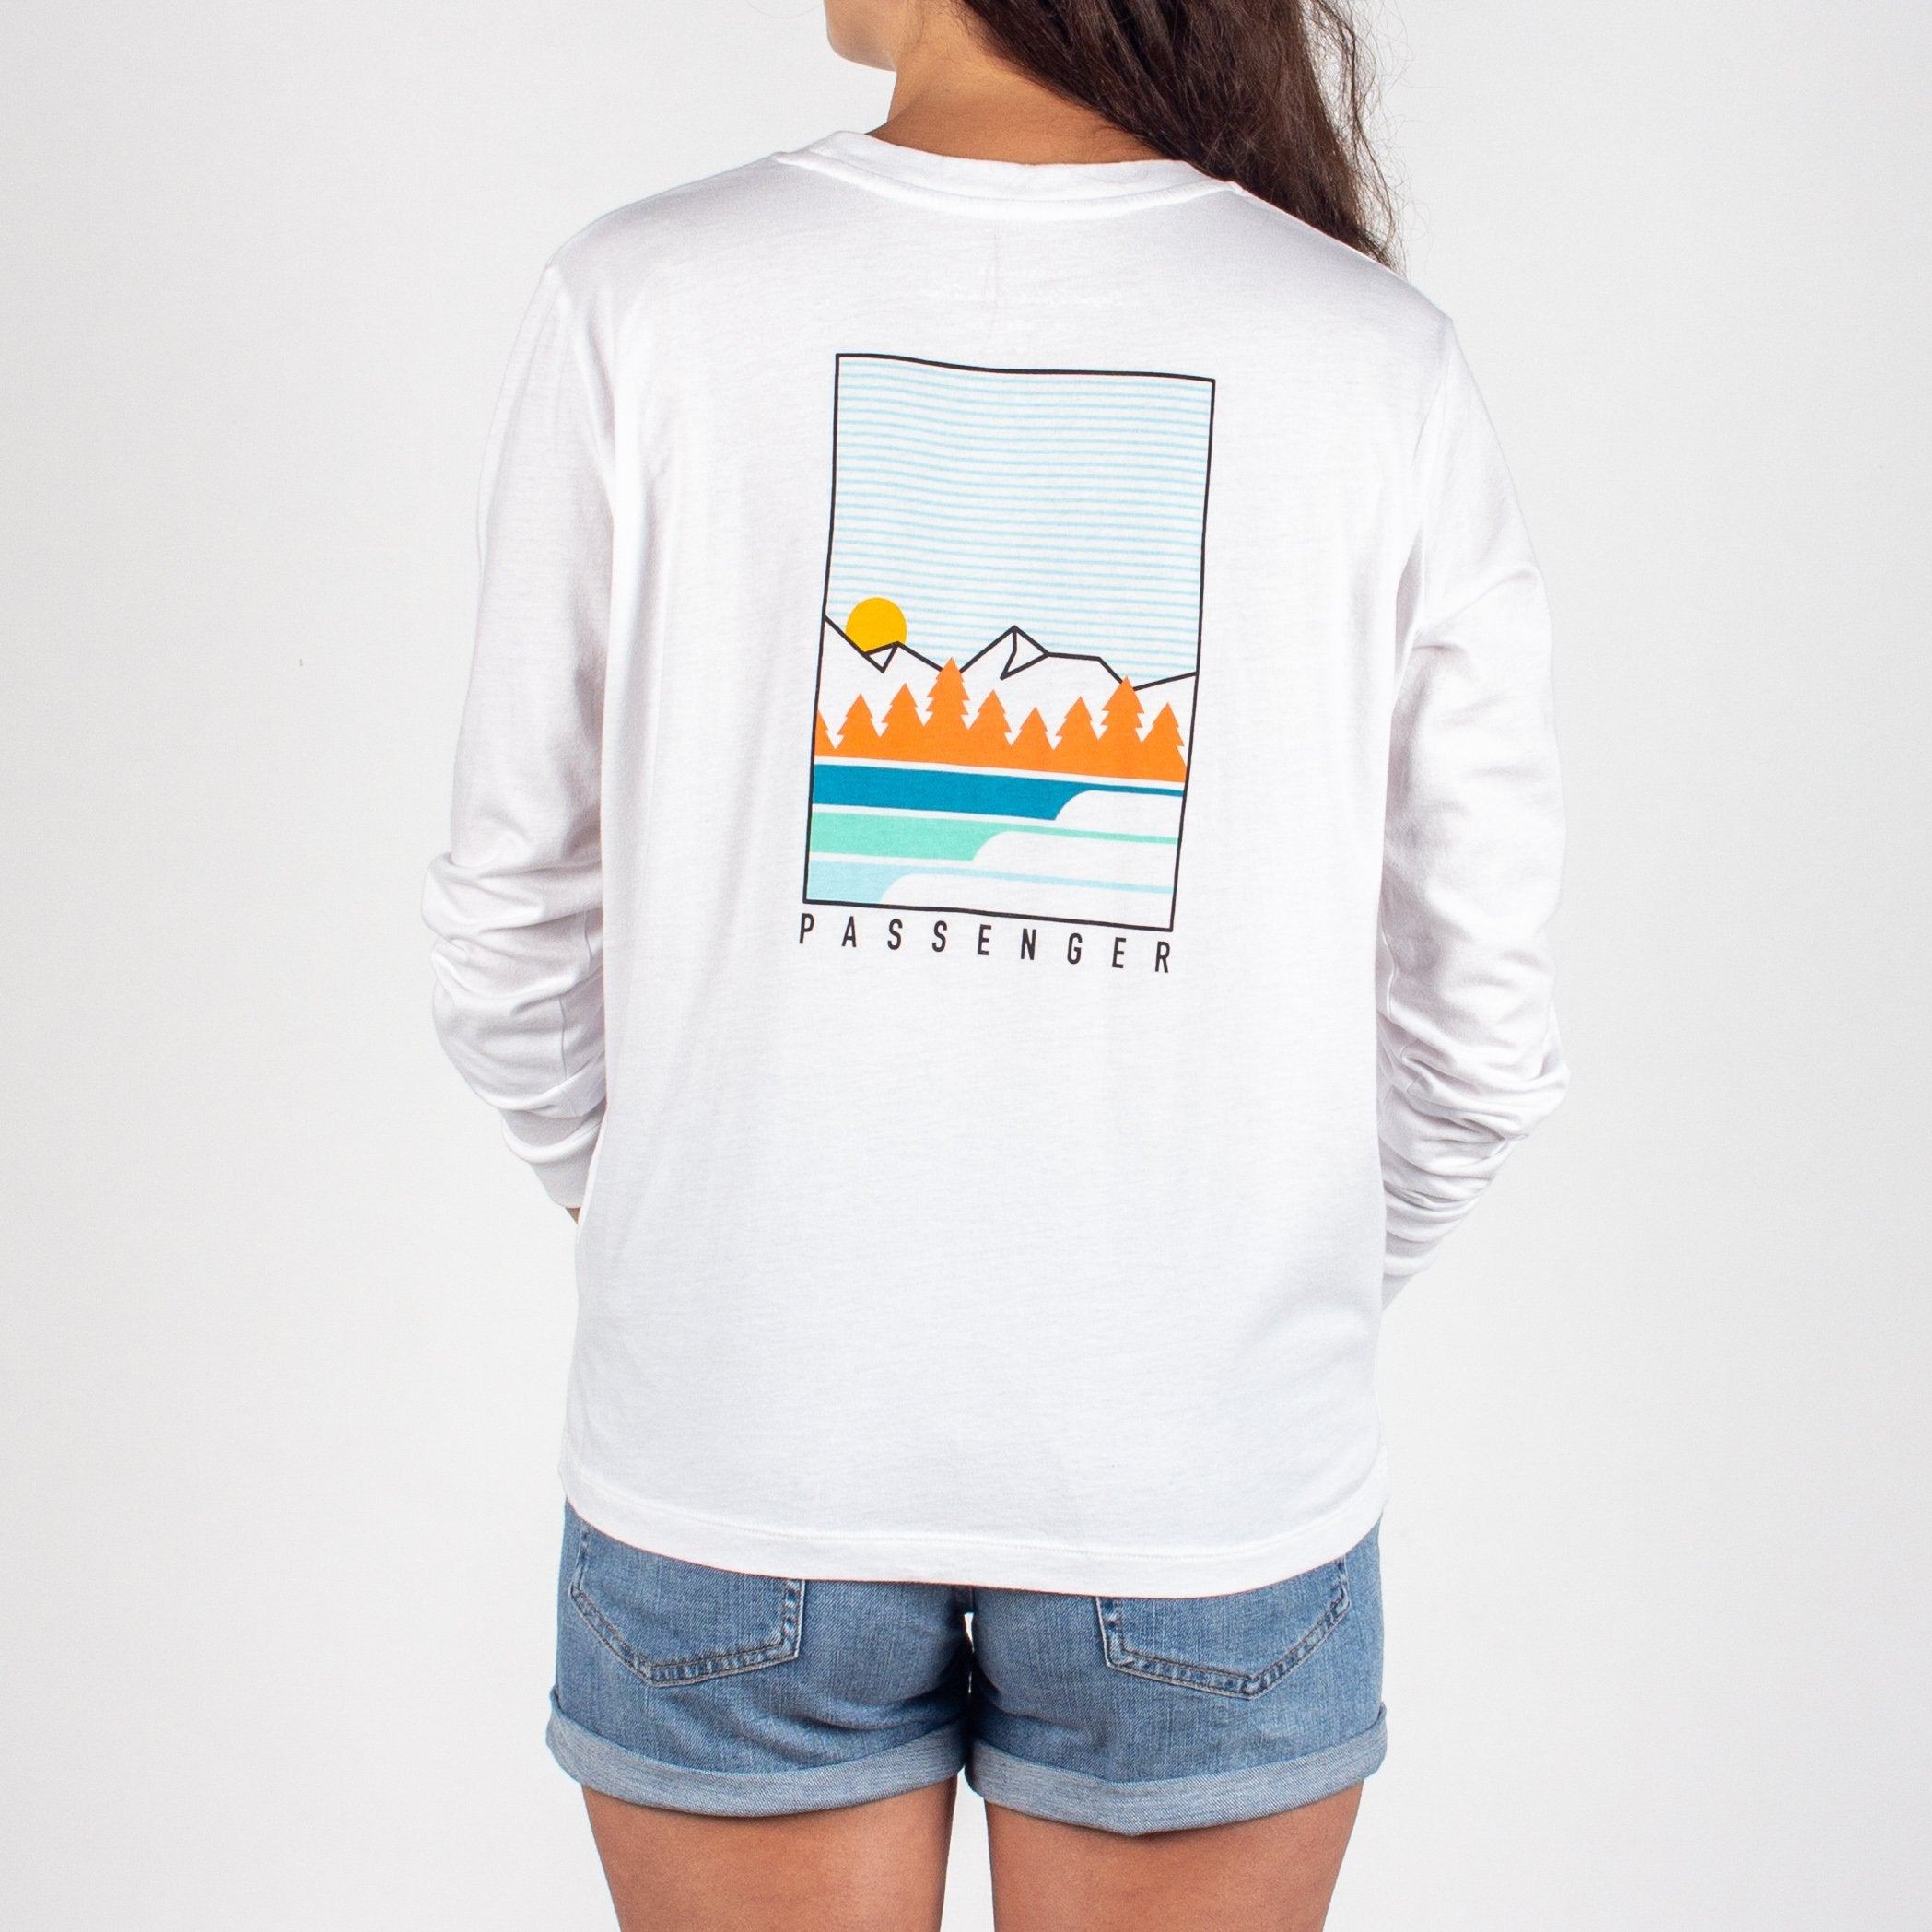 Travel More L/S T-Shirt - White image 6